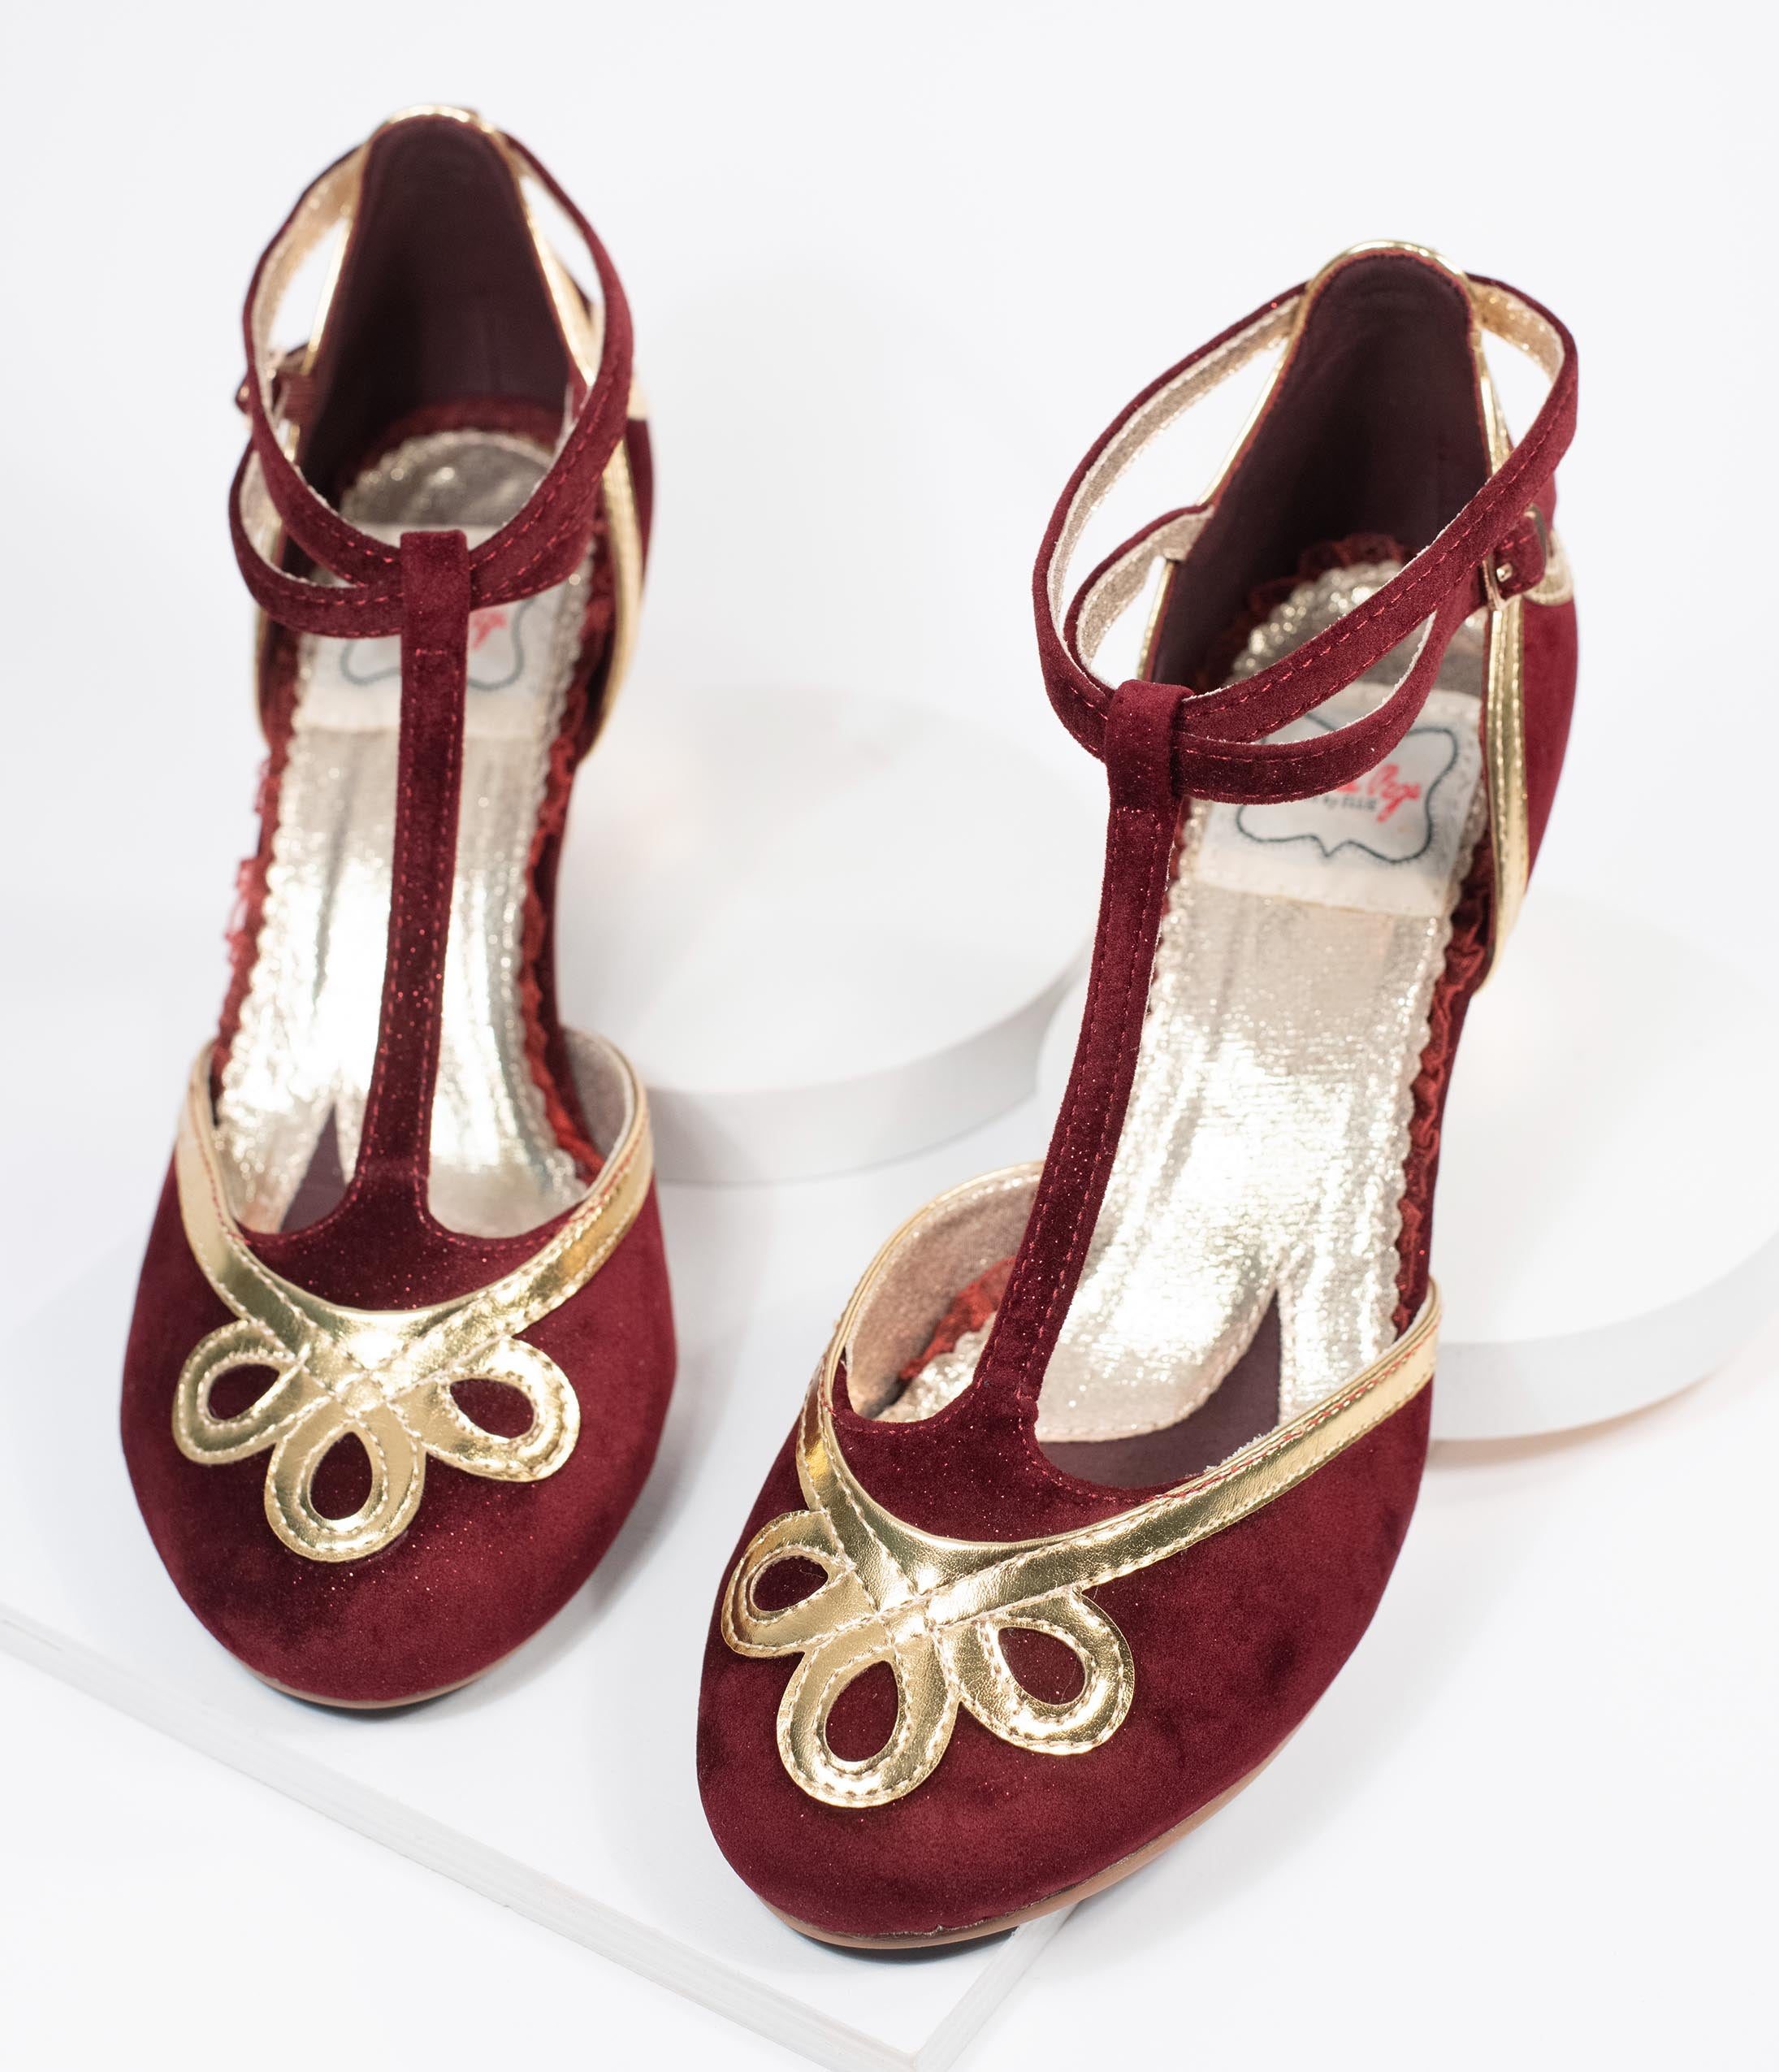 1930s Shoes History Bettie Page Burgundy Suede  Metallic Gold Lois T-Strap Heels $82.00 AT vintagedancer.com